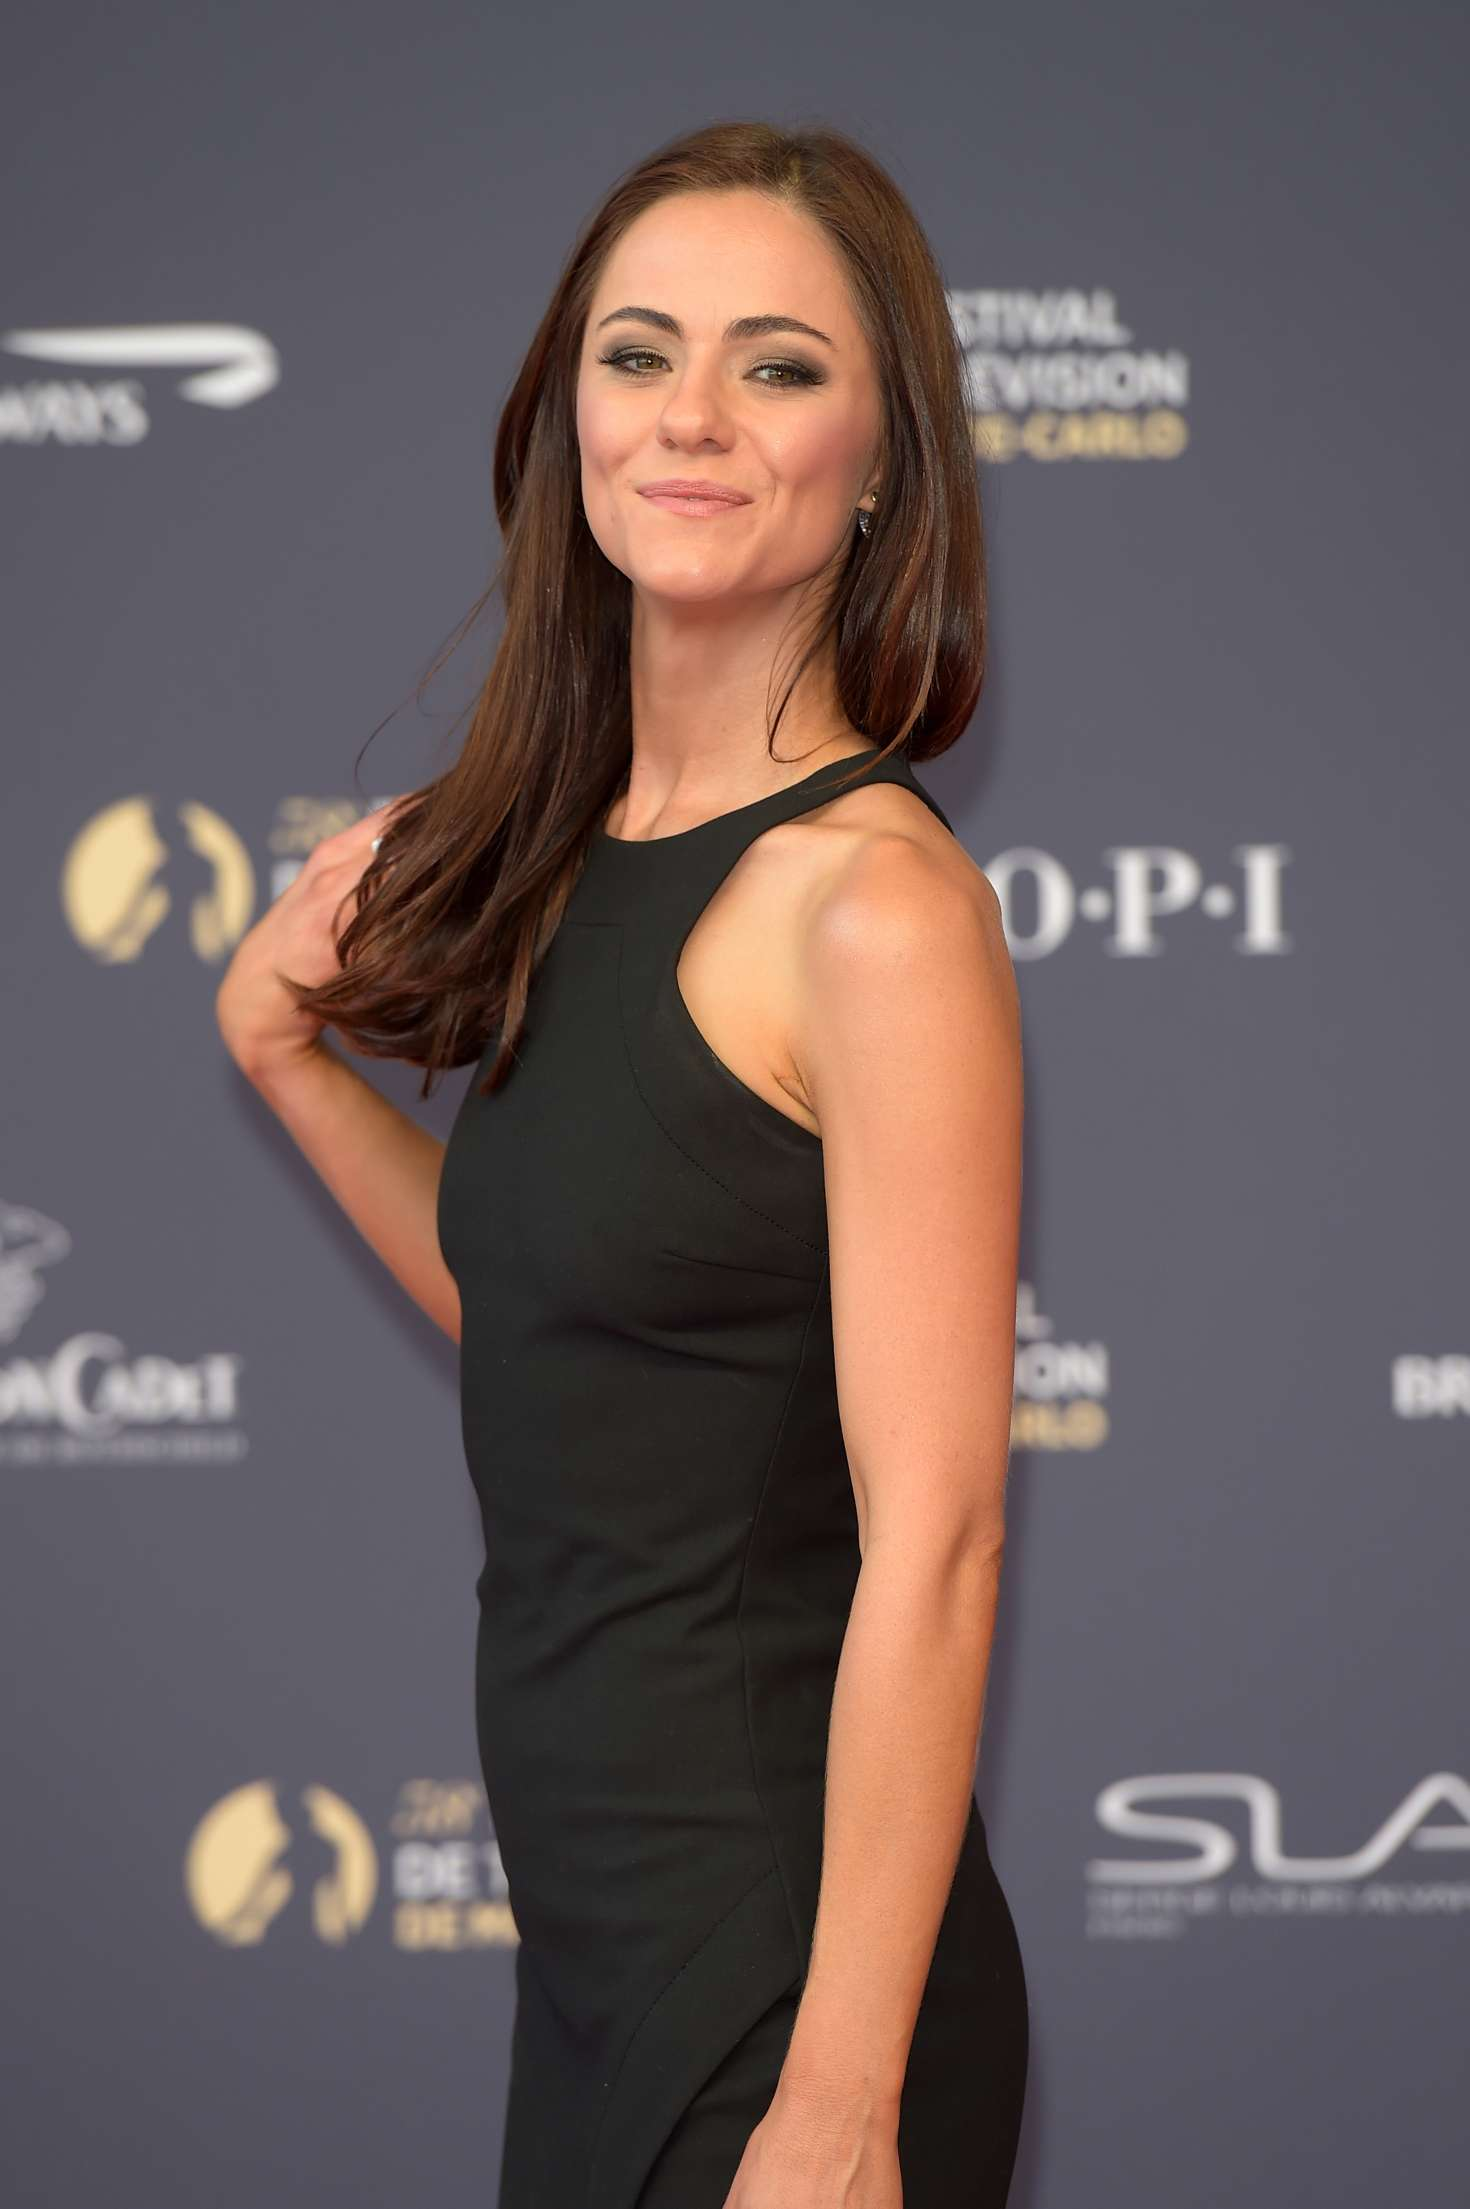 Alexandra Park - 2018 International Television Festival Opening Ceremony in Monte Carlo